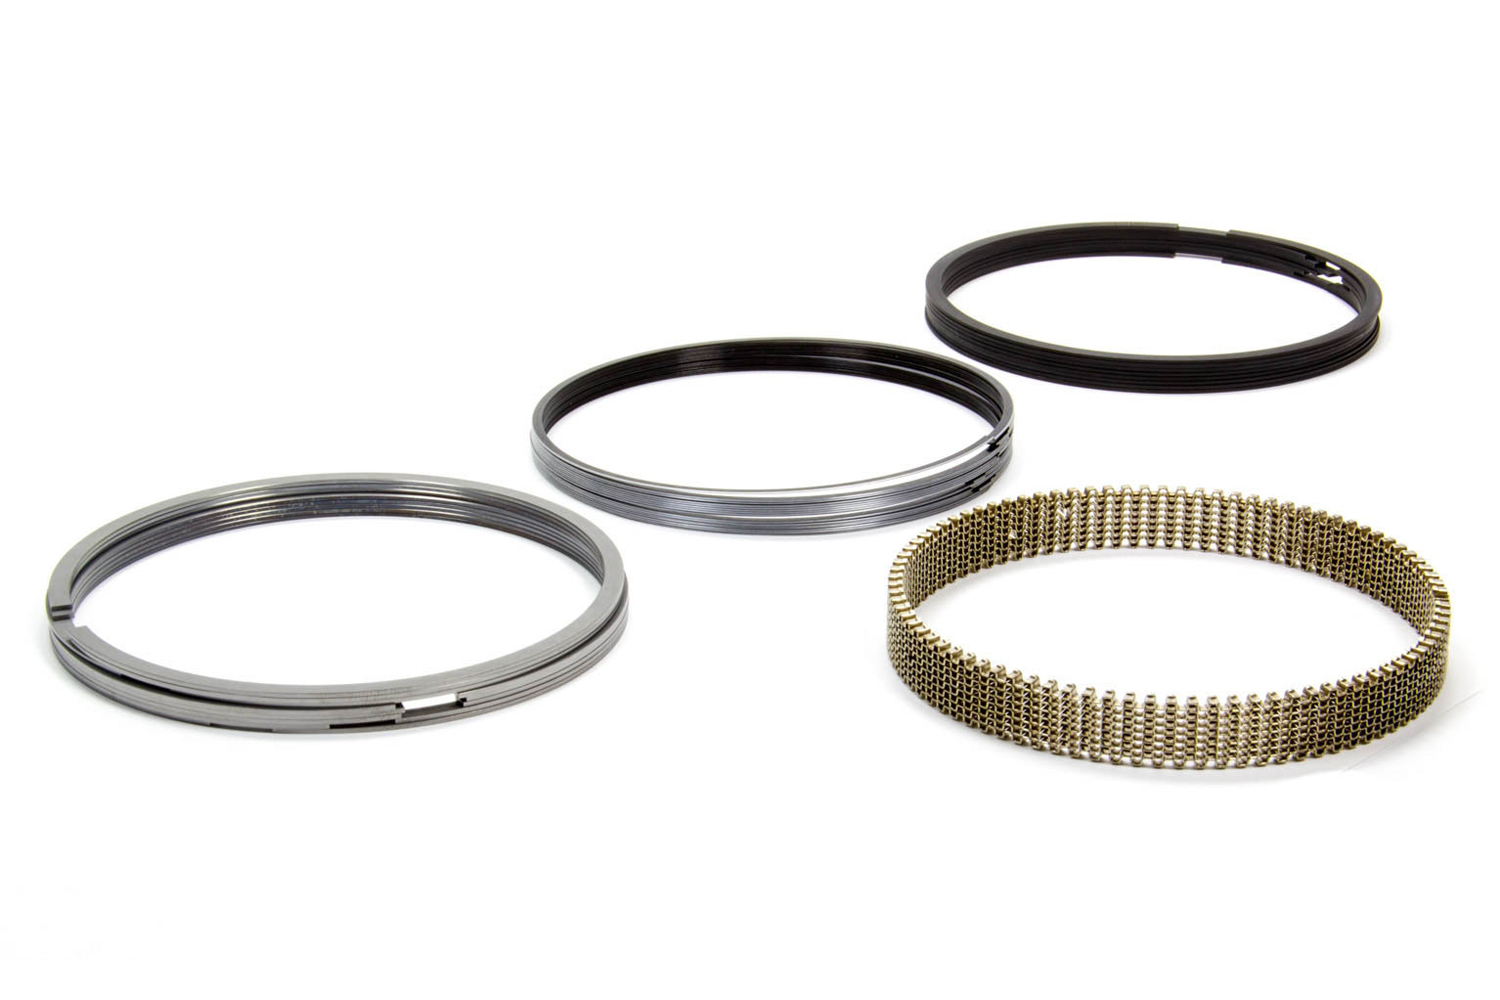 Total Seal CS9150-15 Piston Rings, 4.615 in Bore, 1/16 x 1/16 x 3/16 in Thick, Standard Tension, Steel, 8-Cylinder, Kit